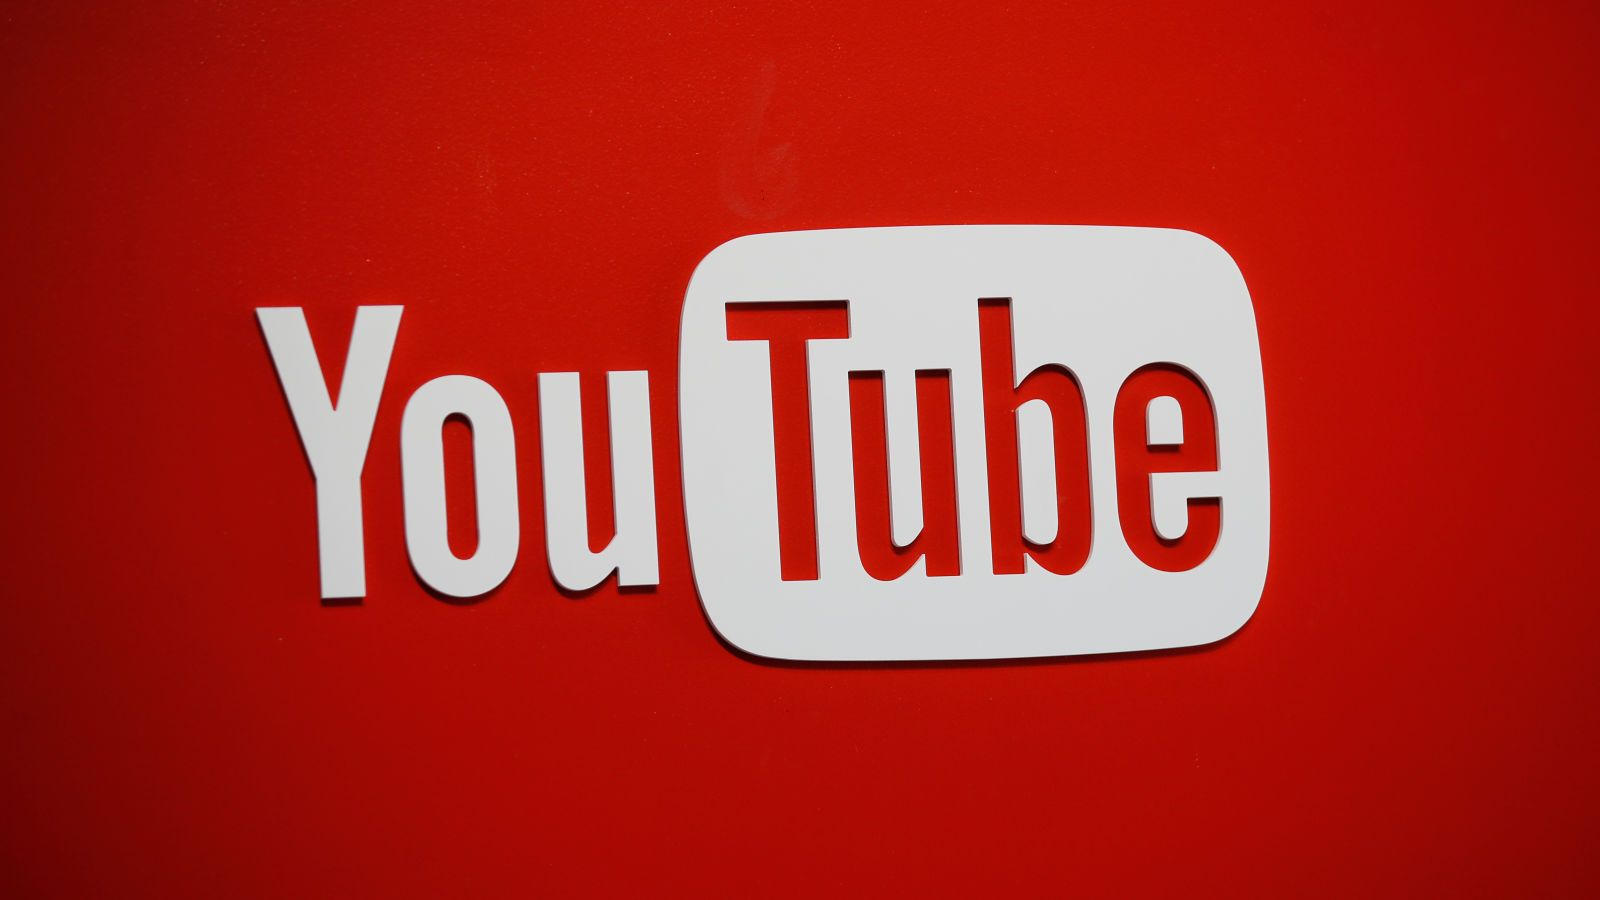 Youtube red free stream